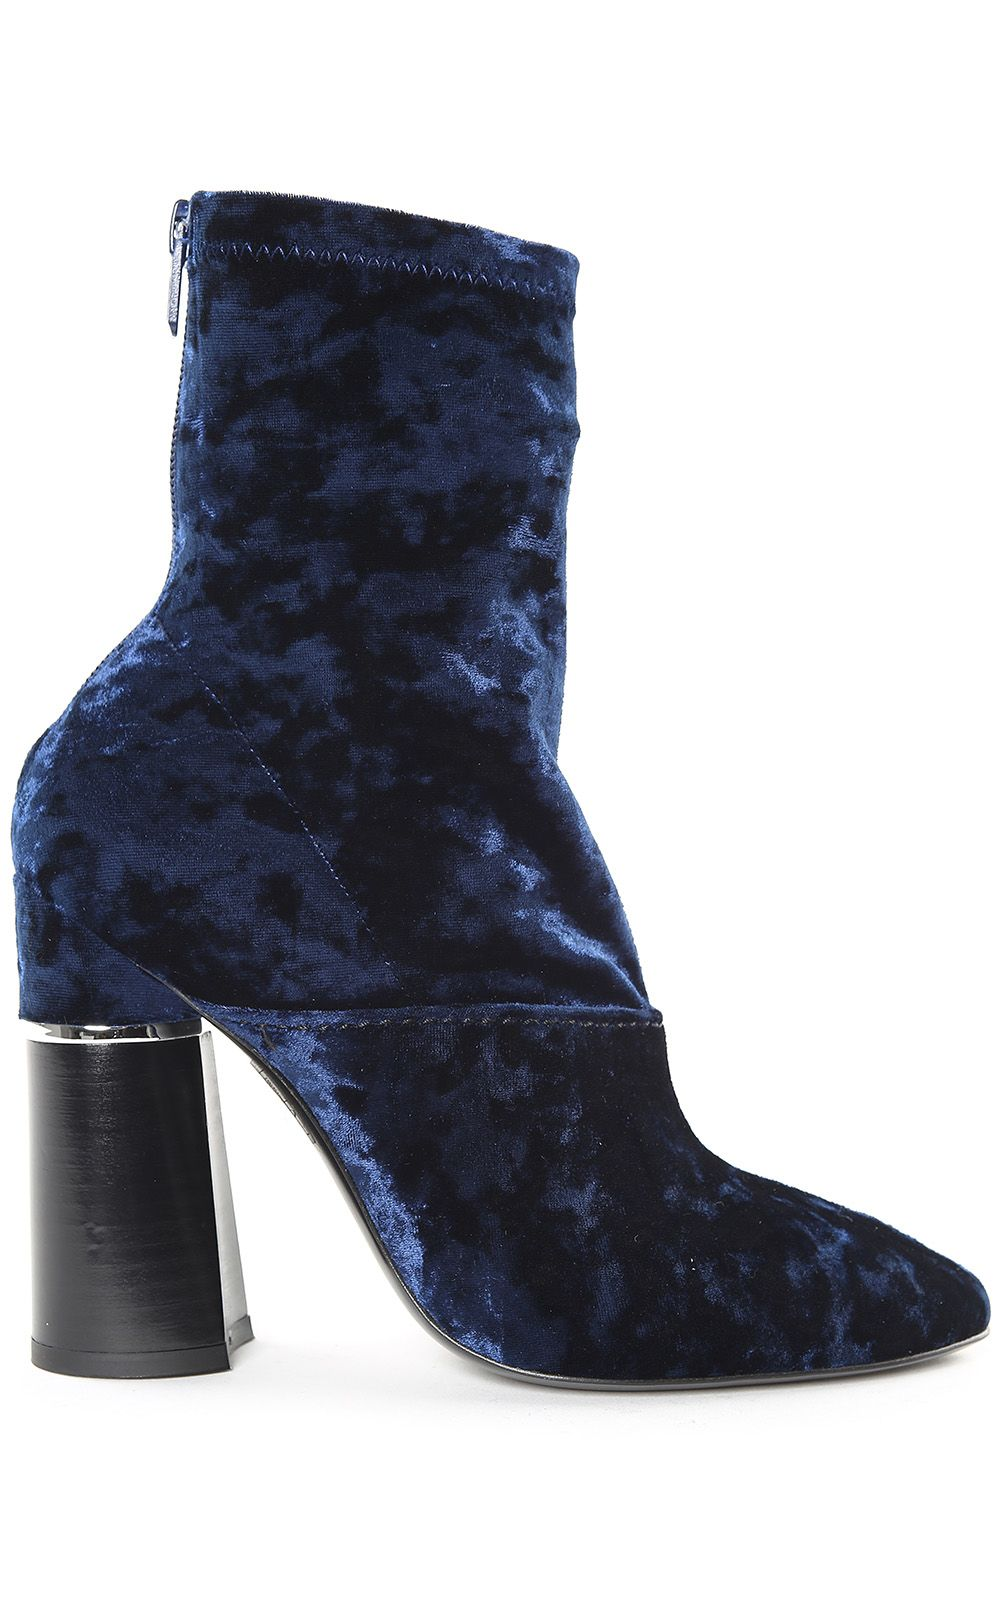 3.1 Phillip Lim Kyoto Stretch-velvet Ankle Boots